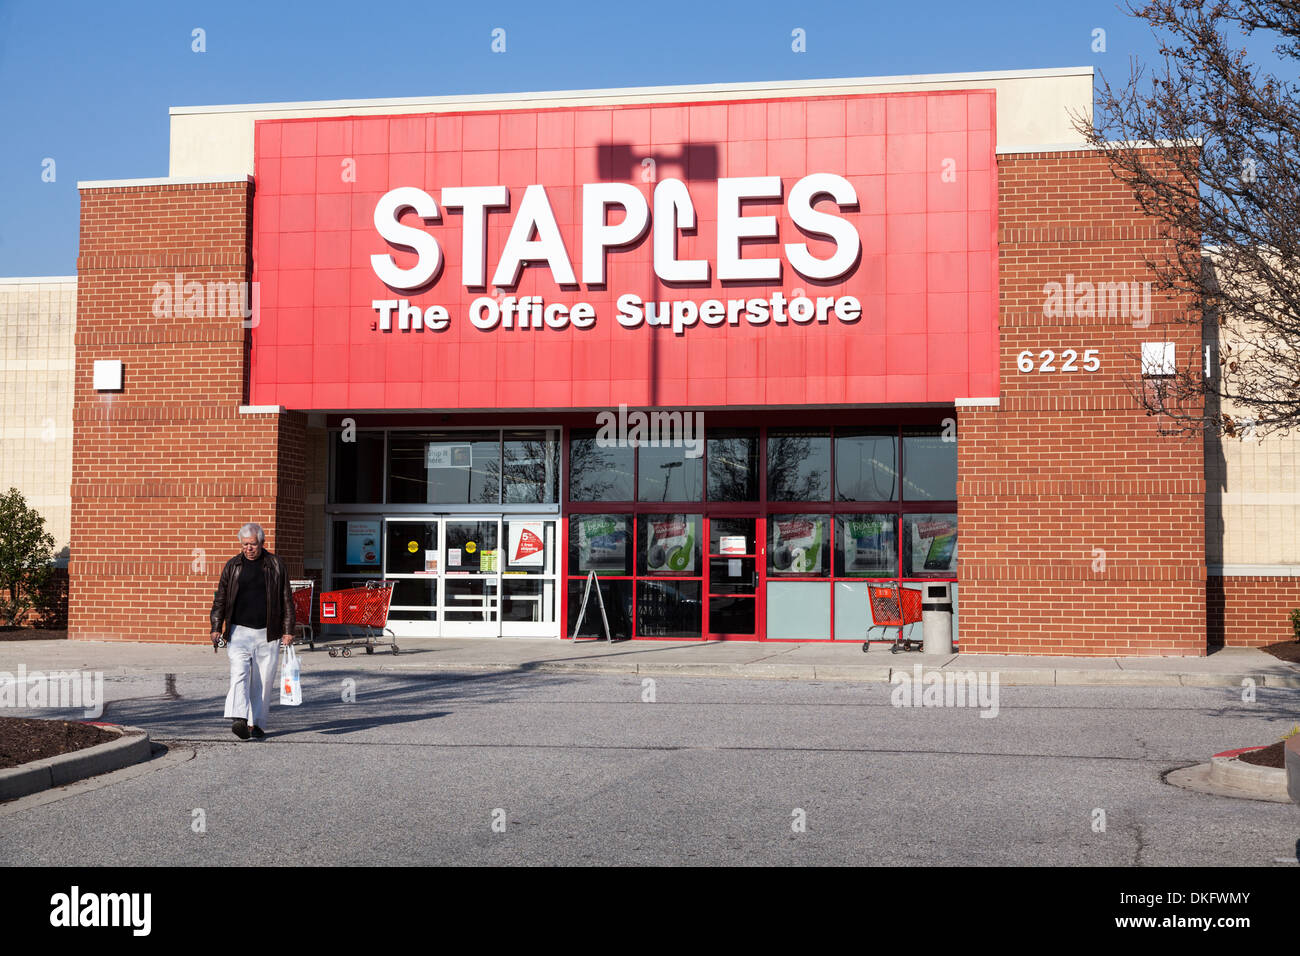 Staples Office Superstore box store, Columbia, Maryland, Howard County - Stock Image